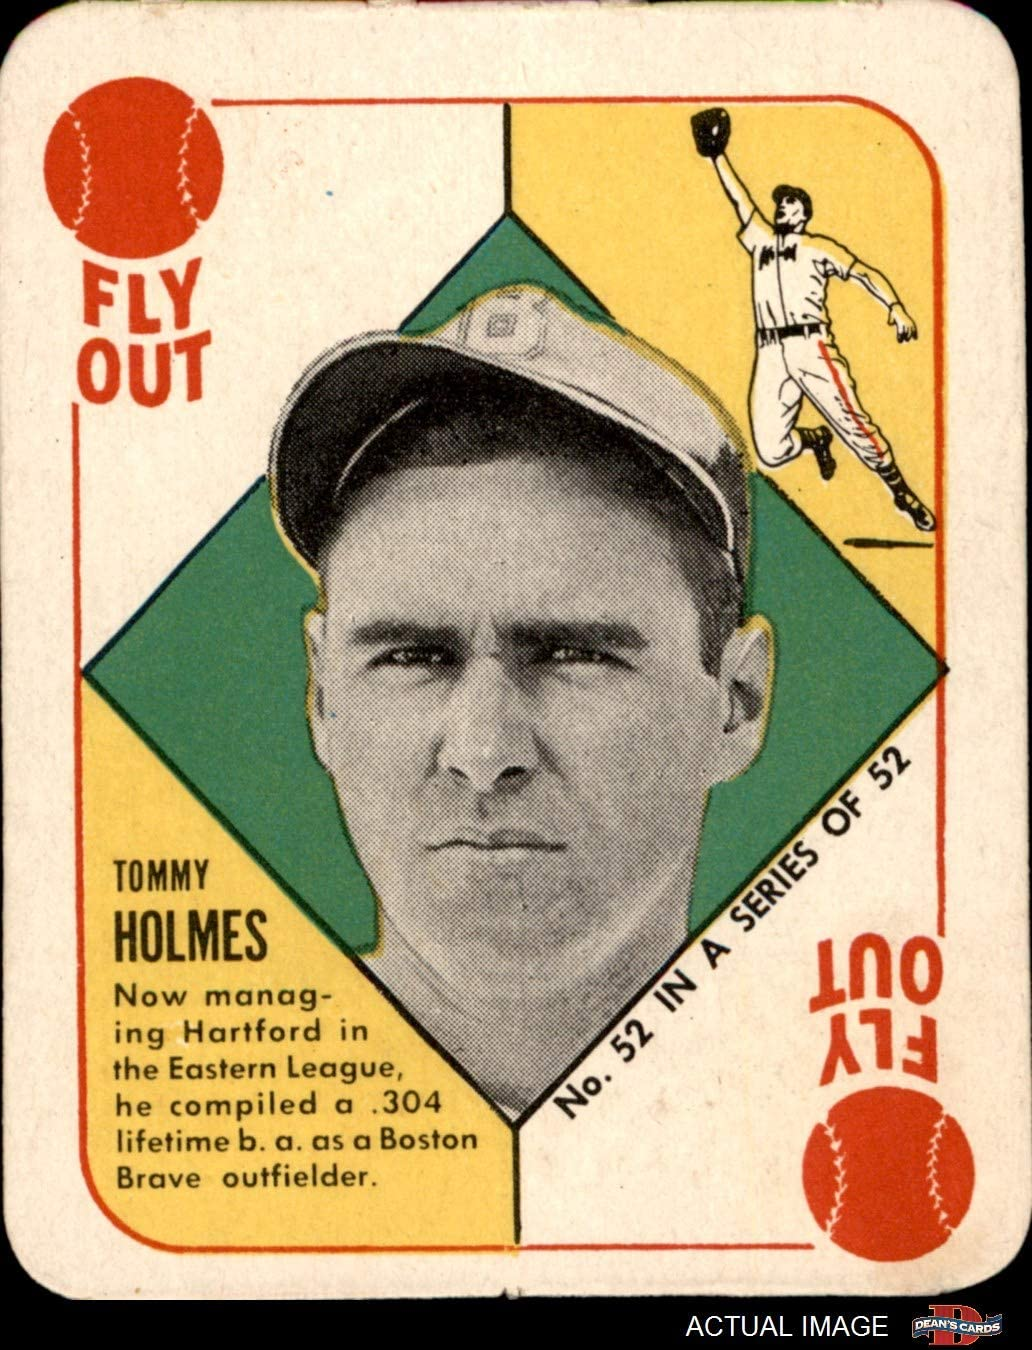 "1951 Topps # 52 Har Tommy Holmes Boston Braves (Baseball Card) (Bio Begins""jetzt Managing Hartford"") Dean'S Cards 4 - Vg/Ex Braves"